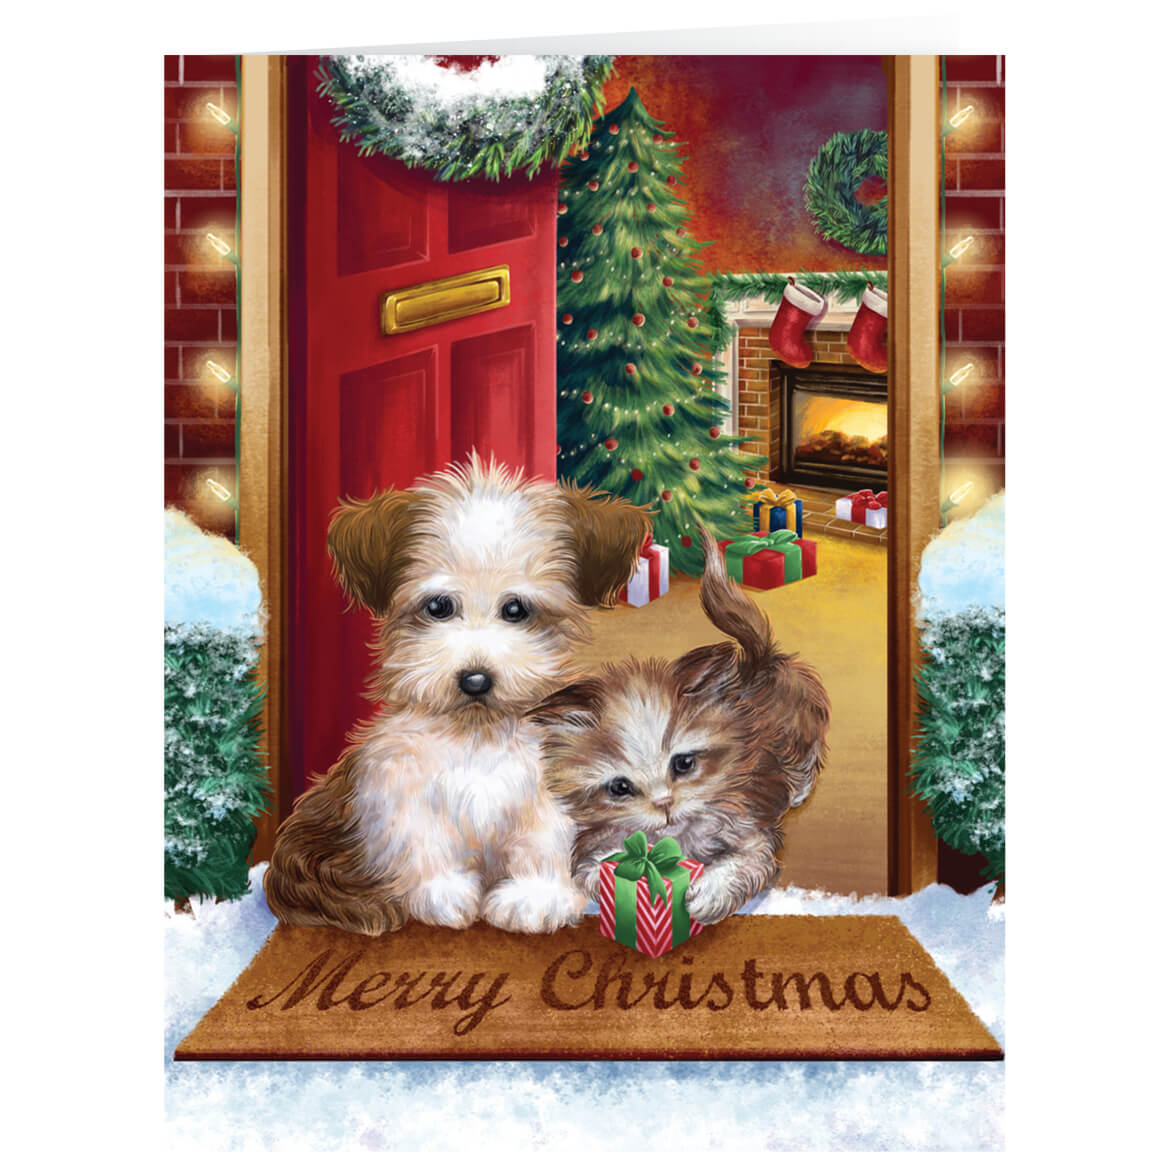 Personalized Puppy & Kitten Christmas Card Set of 20 - Miles Kimball